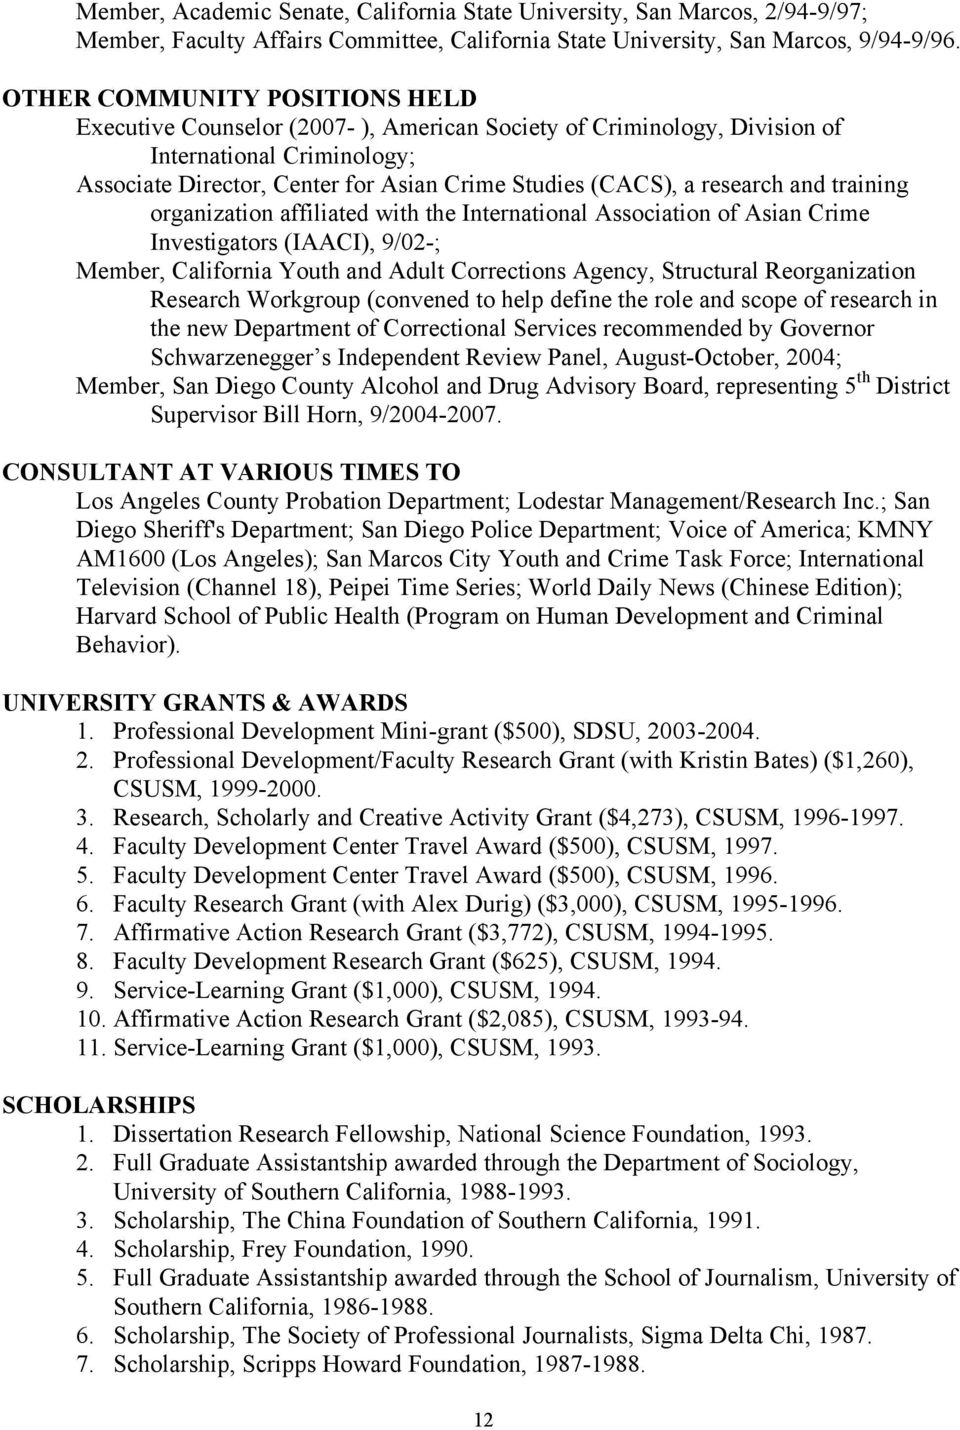 research and training organization affiliated with the International Association of Asian Crime Investigators (IAACI), 9/02-; Member, California Youth and Adult Corrections Agency, Structural